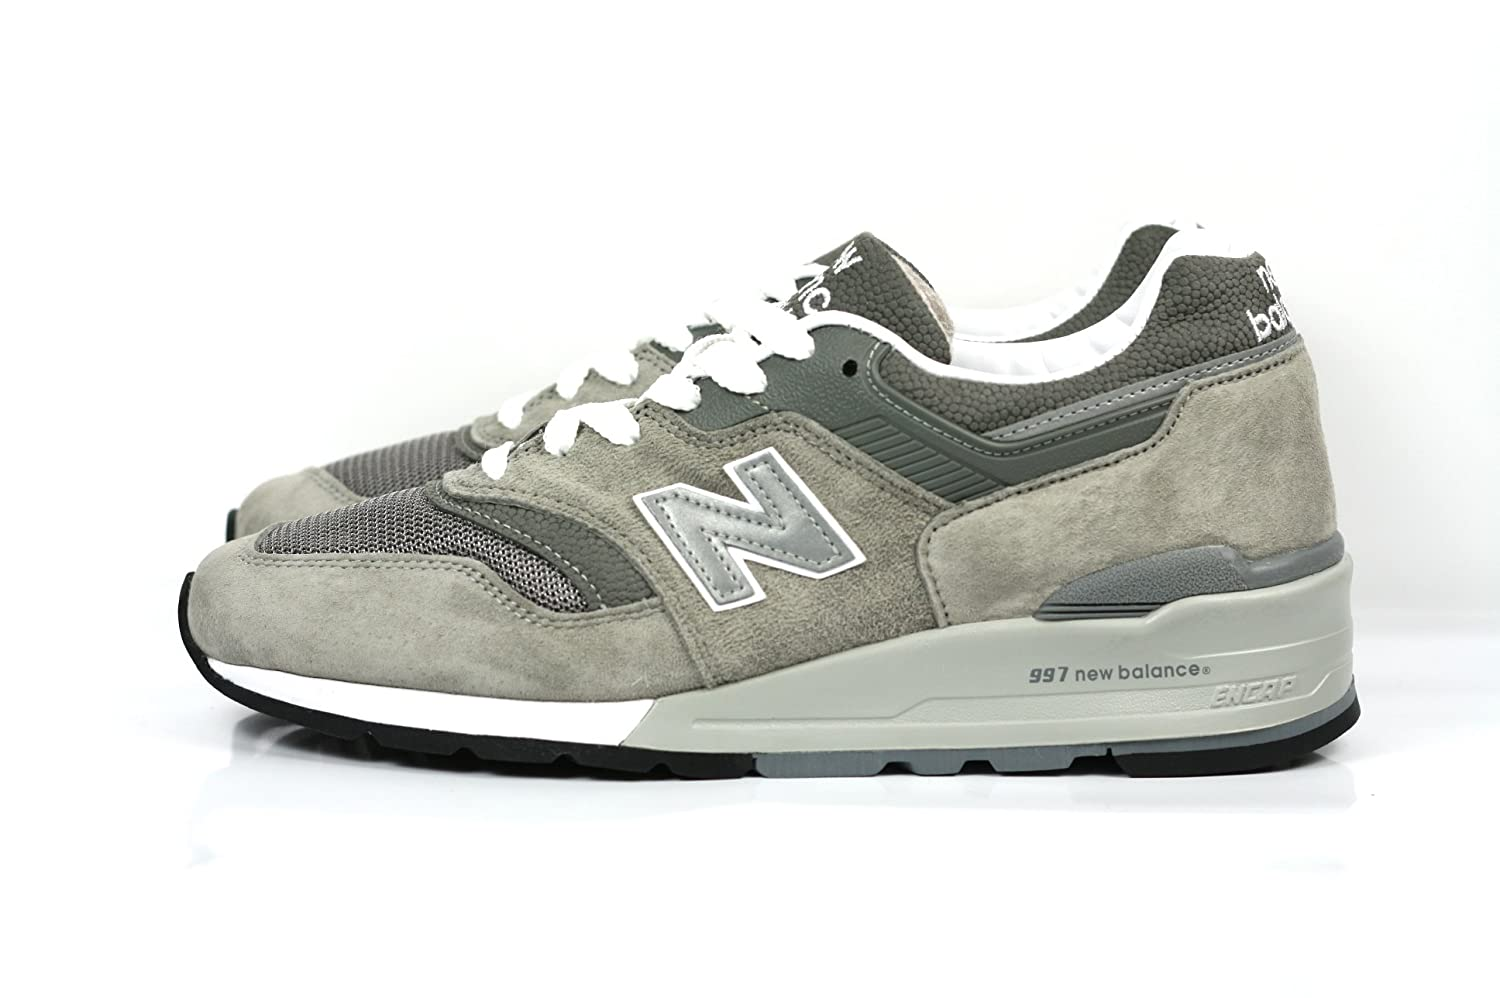 online store f8594 ad15b New Balance 997 Men's Sneakers Made in USA Grey/White M997gy